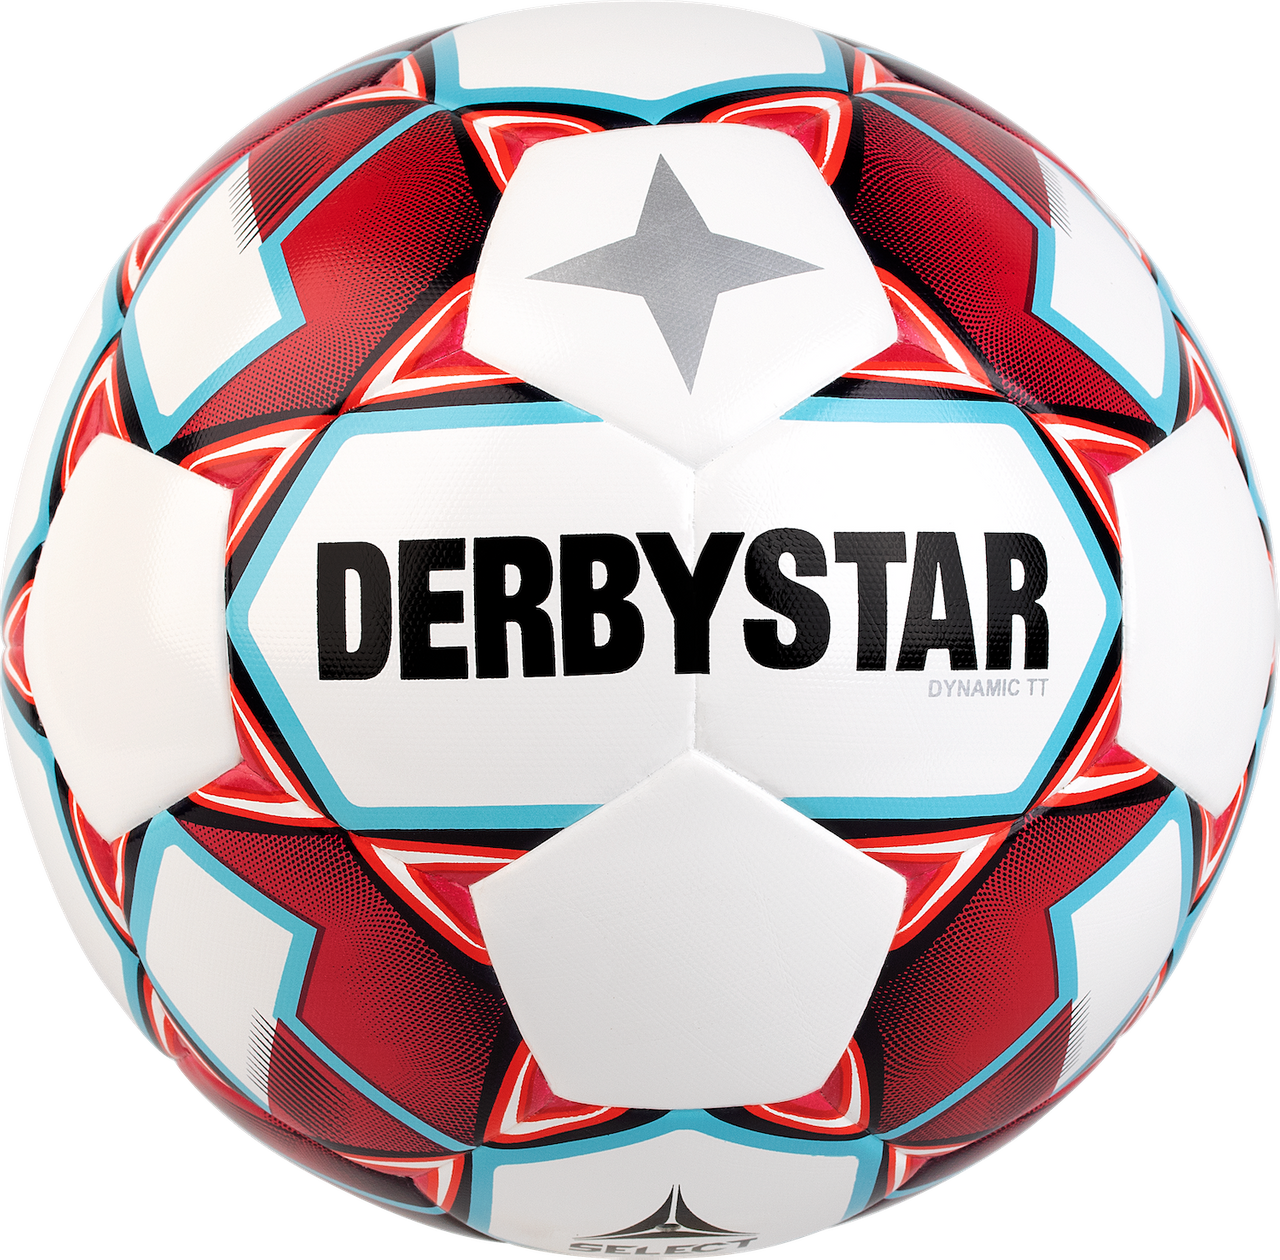 DERBYSTAR Training Ball - DYNAMIC TT